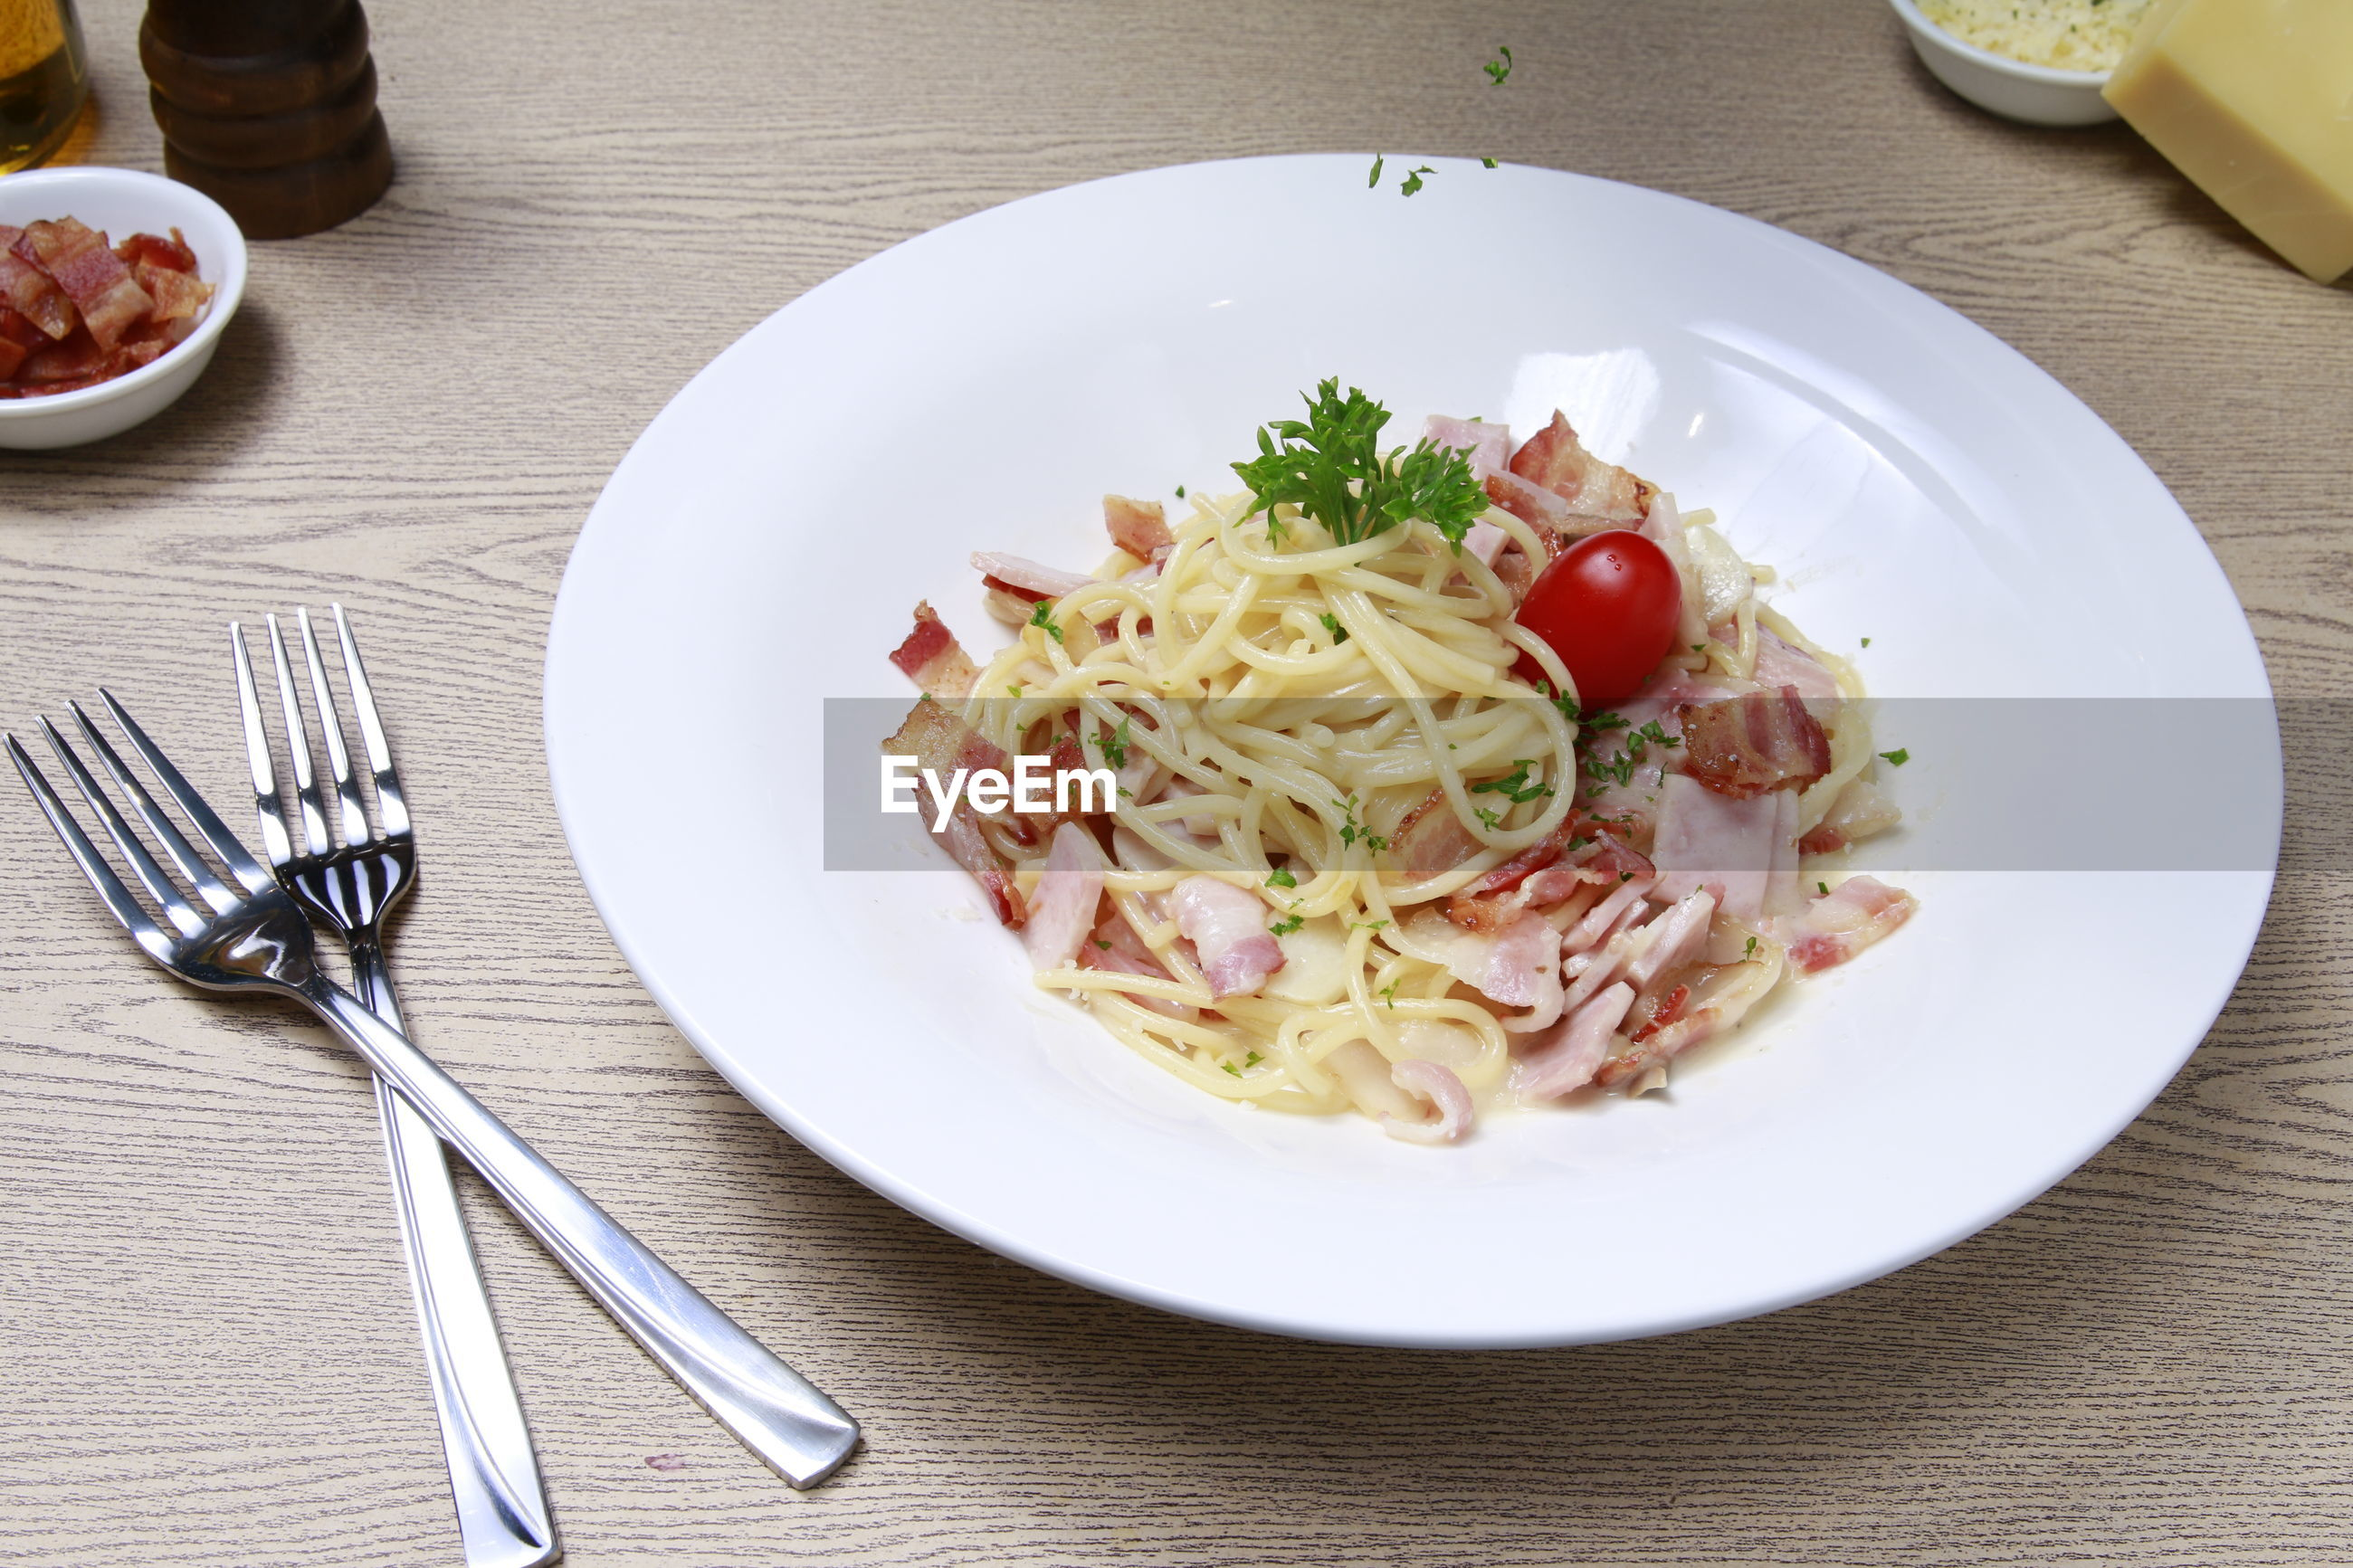 MEAL SERVED ON TABLE